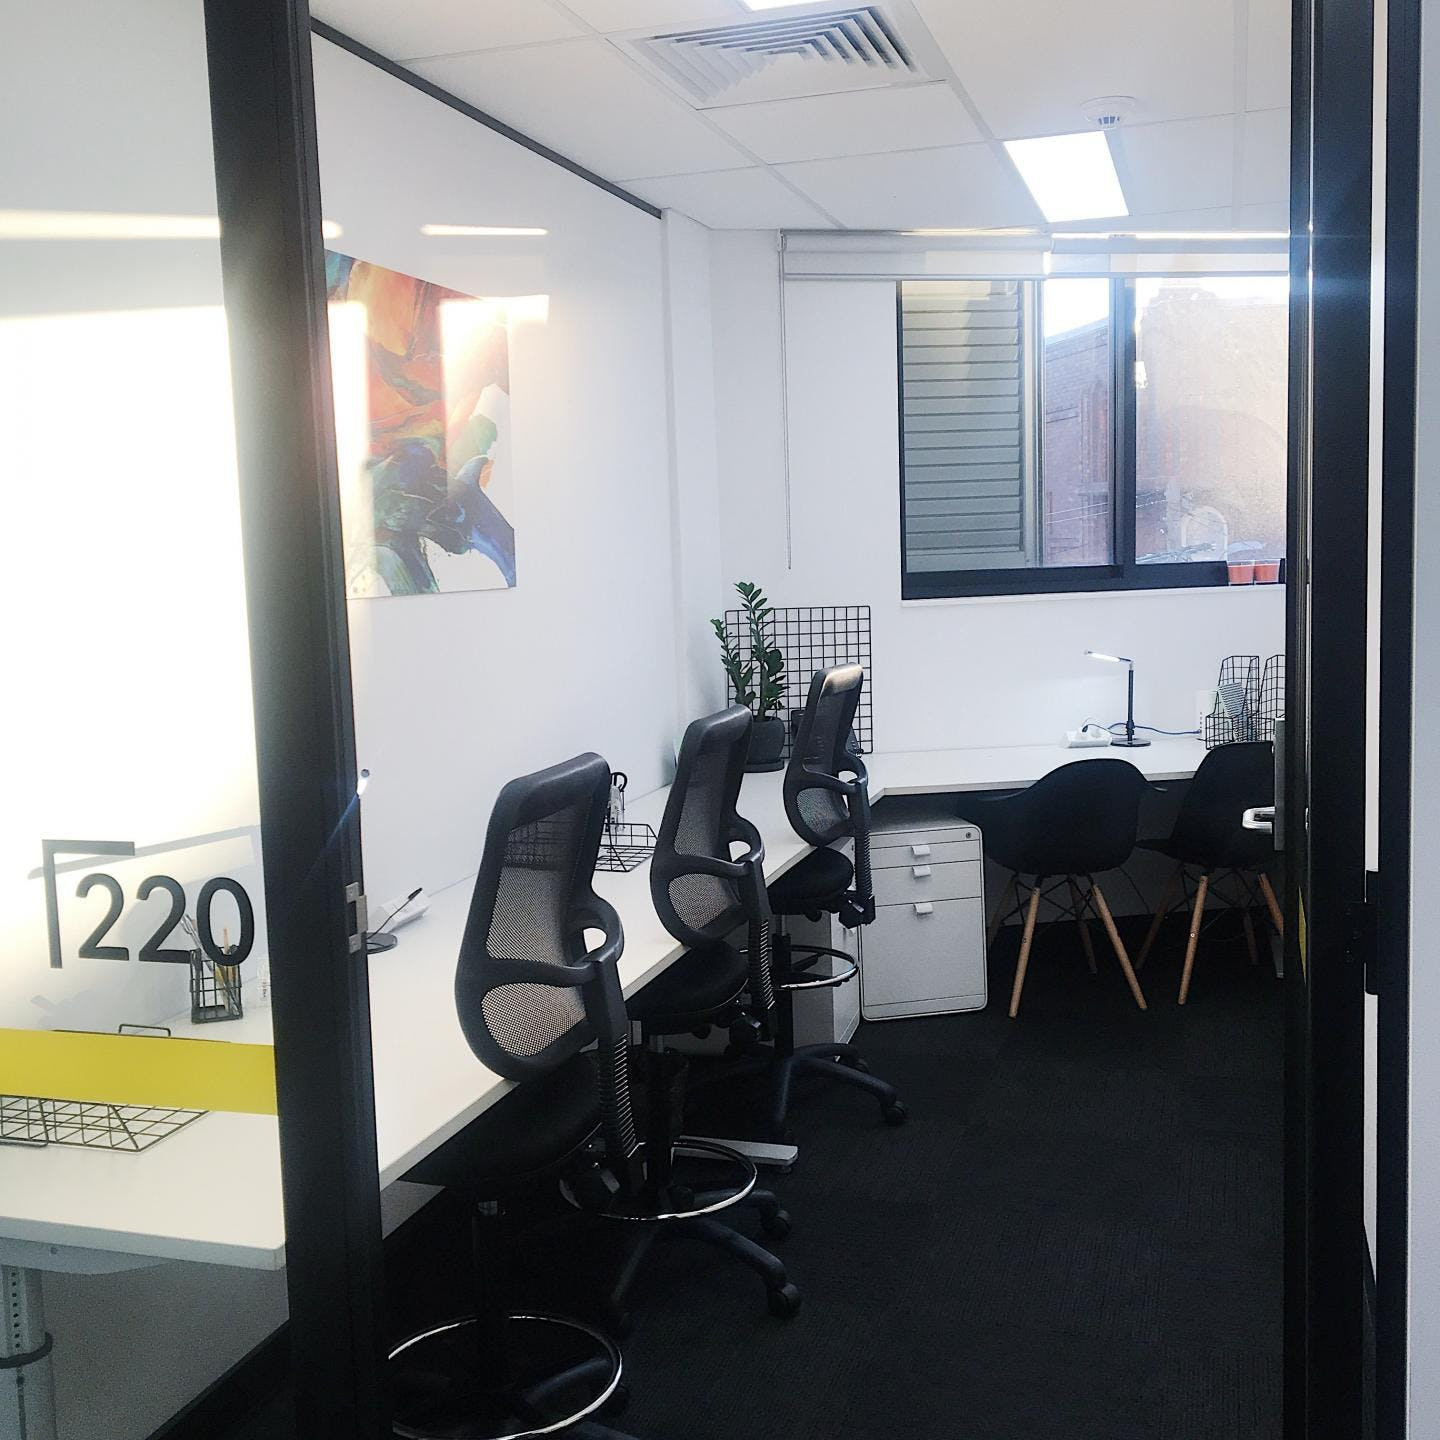 Suite 220, serviced office at Anytime Offices, image 1